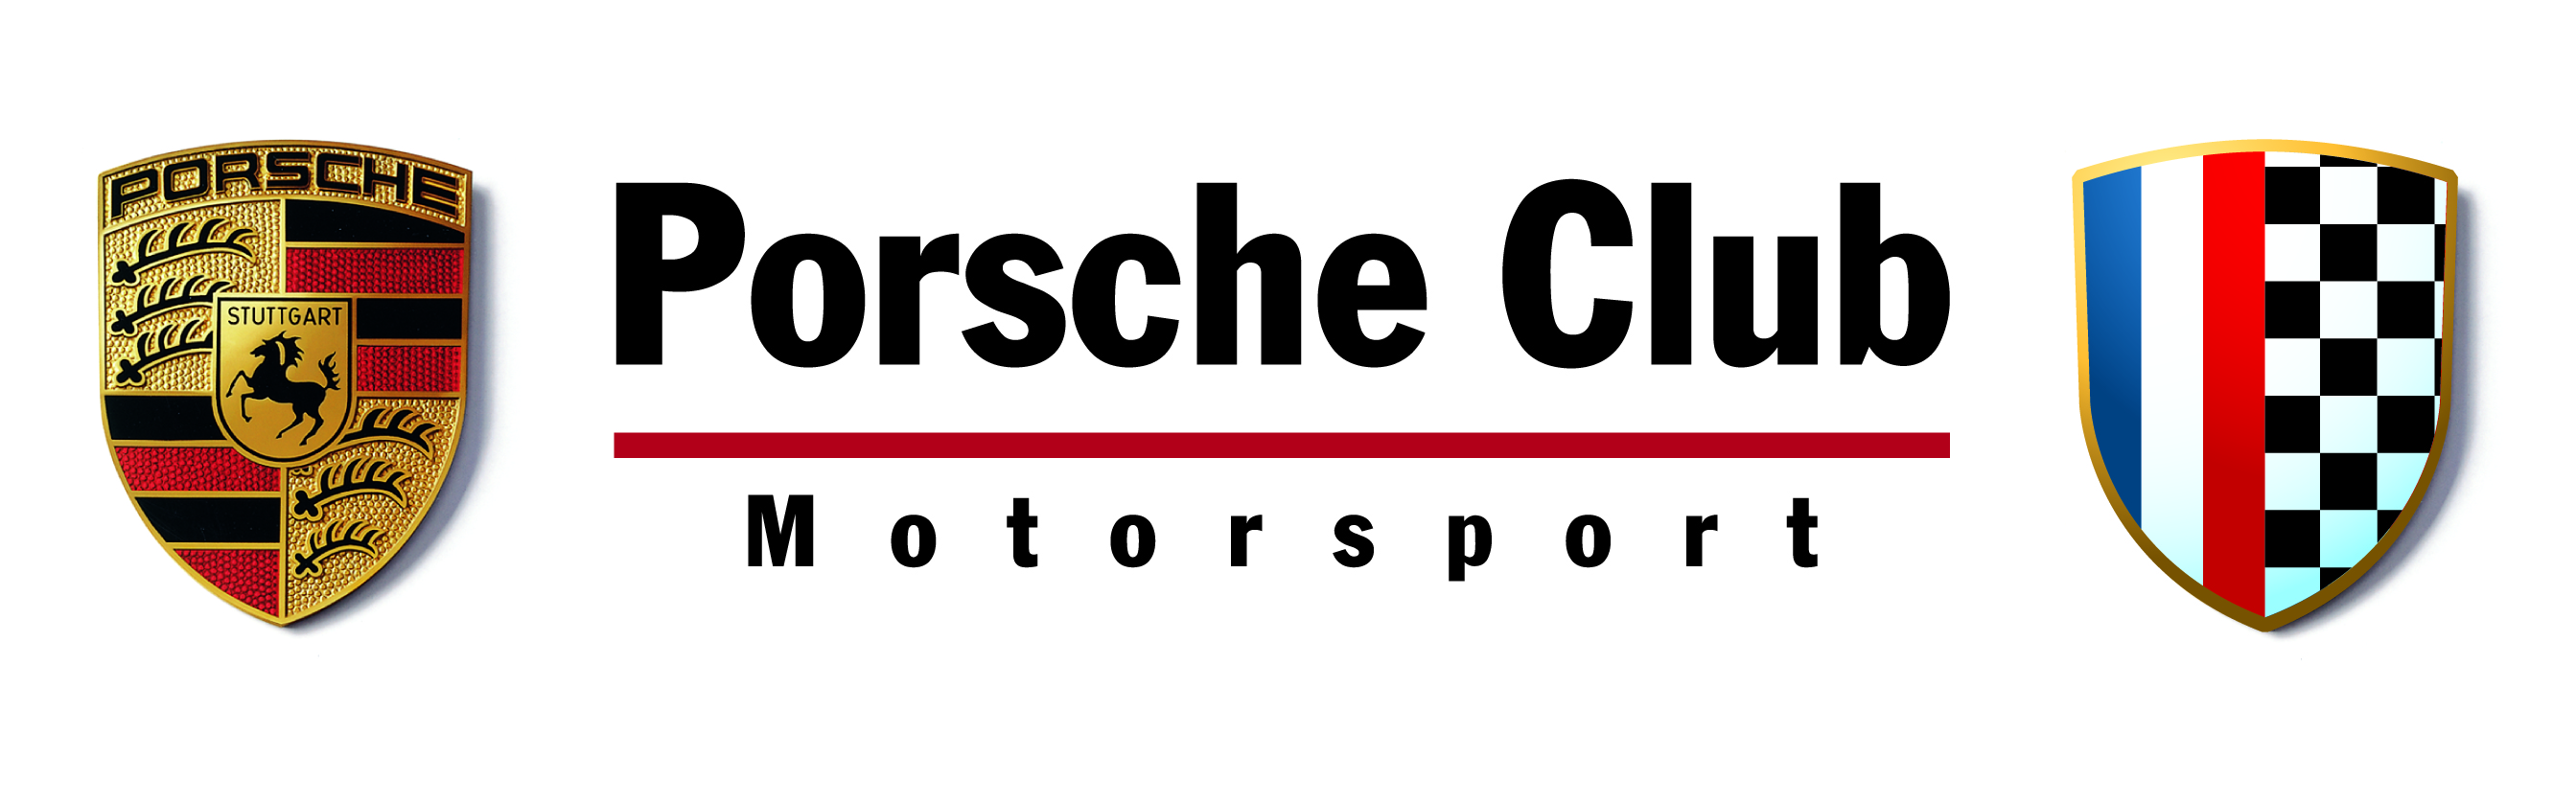 Porsche club motorsport team racing technology for National general motor club